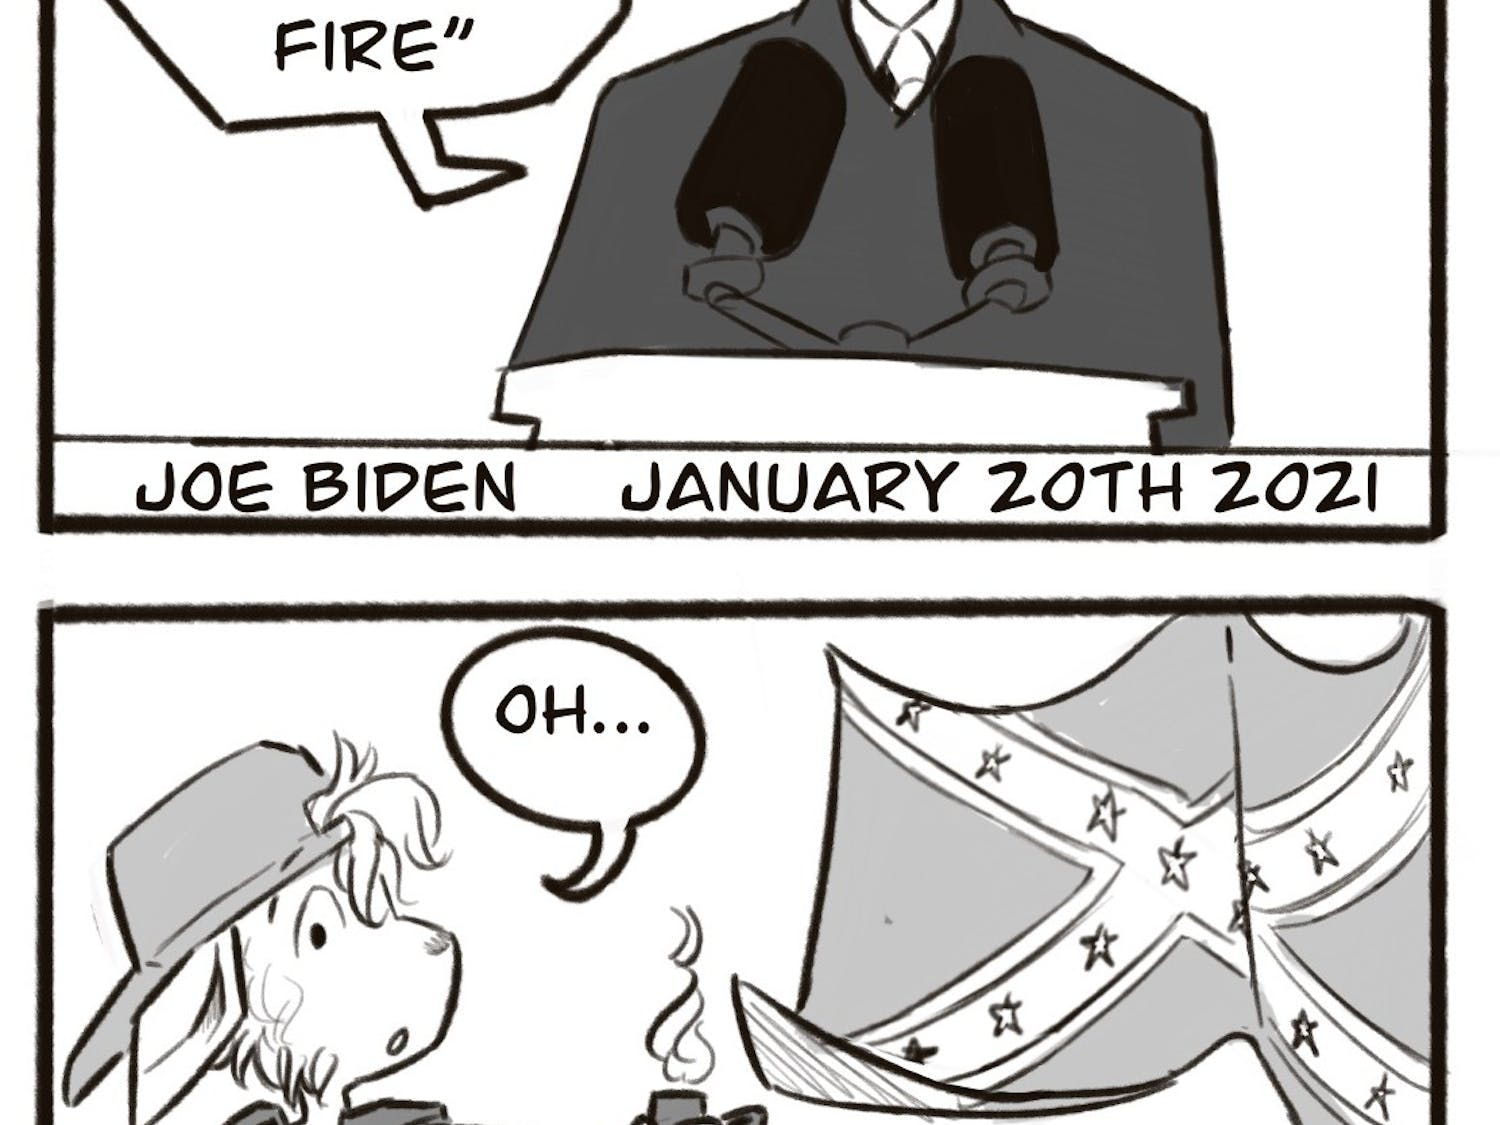 This week, our Graphics Editors Lyra and Zoe and graphics designer Lily remark on President Joe Biden's Inauguration Day and the events following up to it.